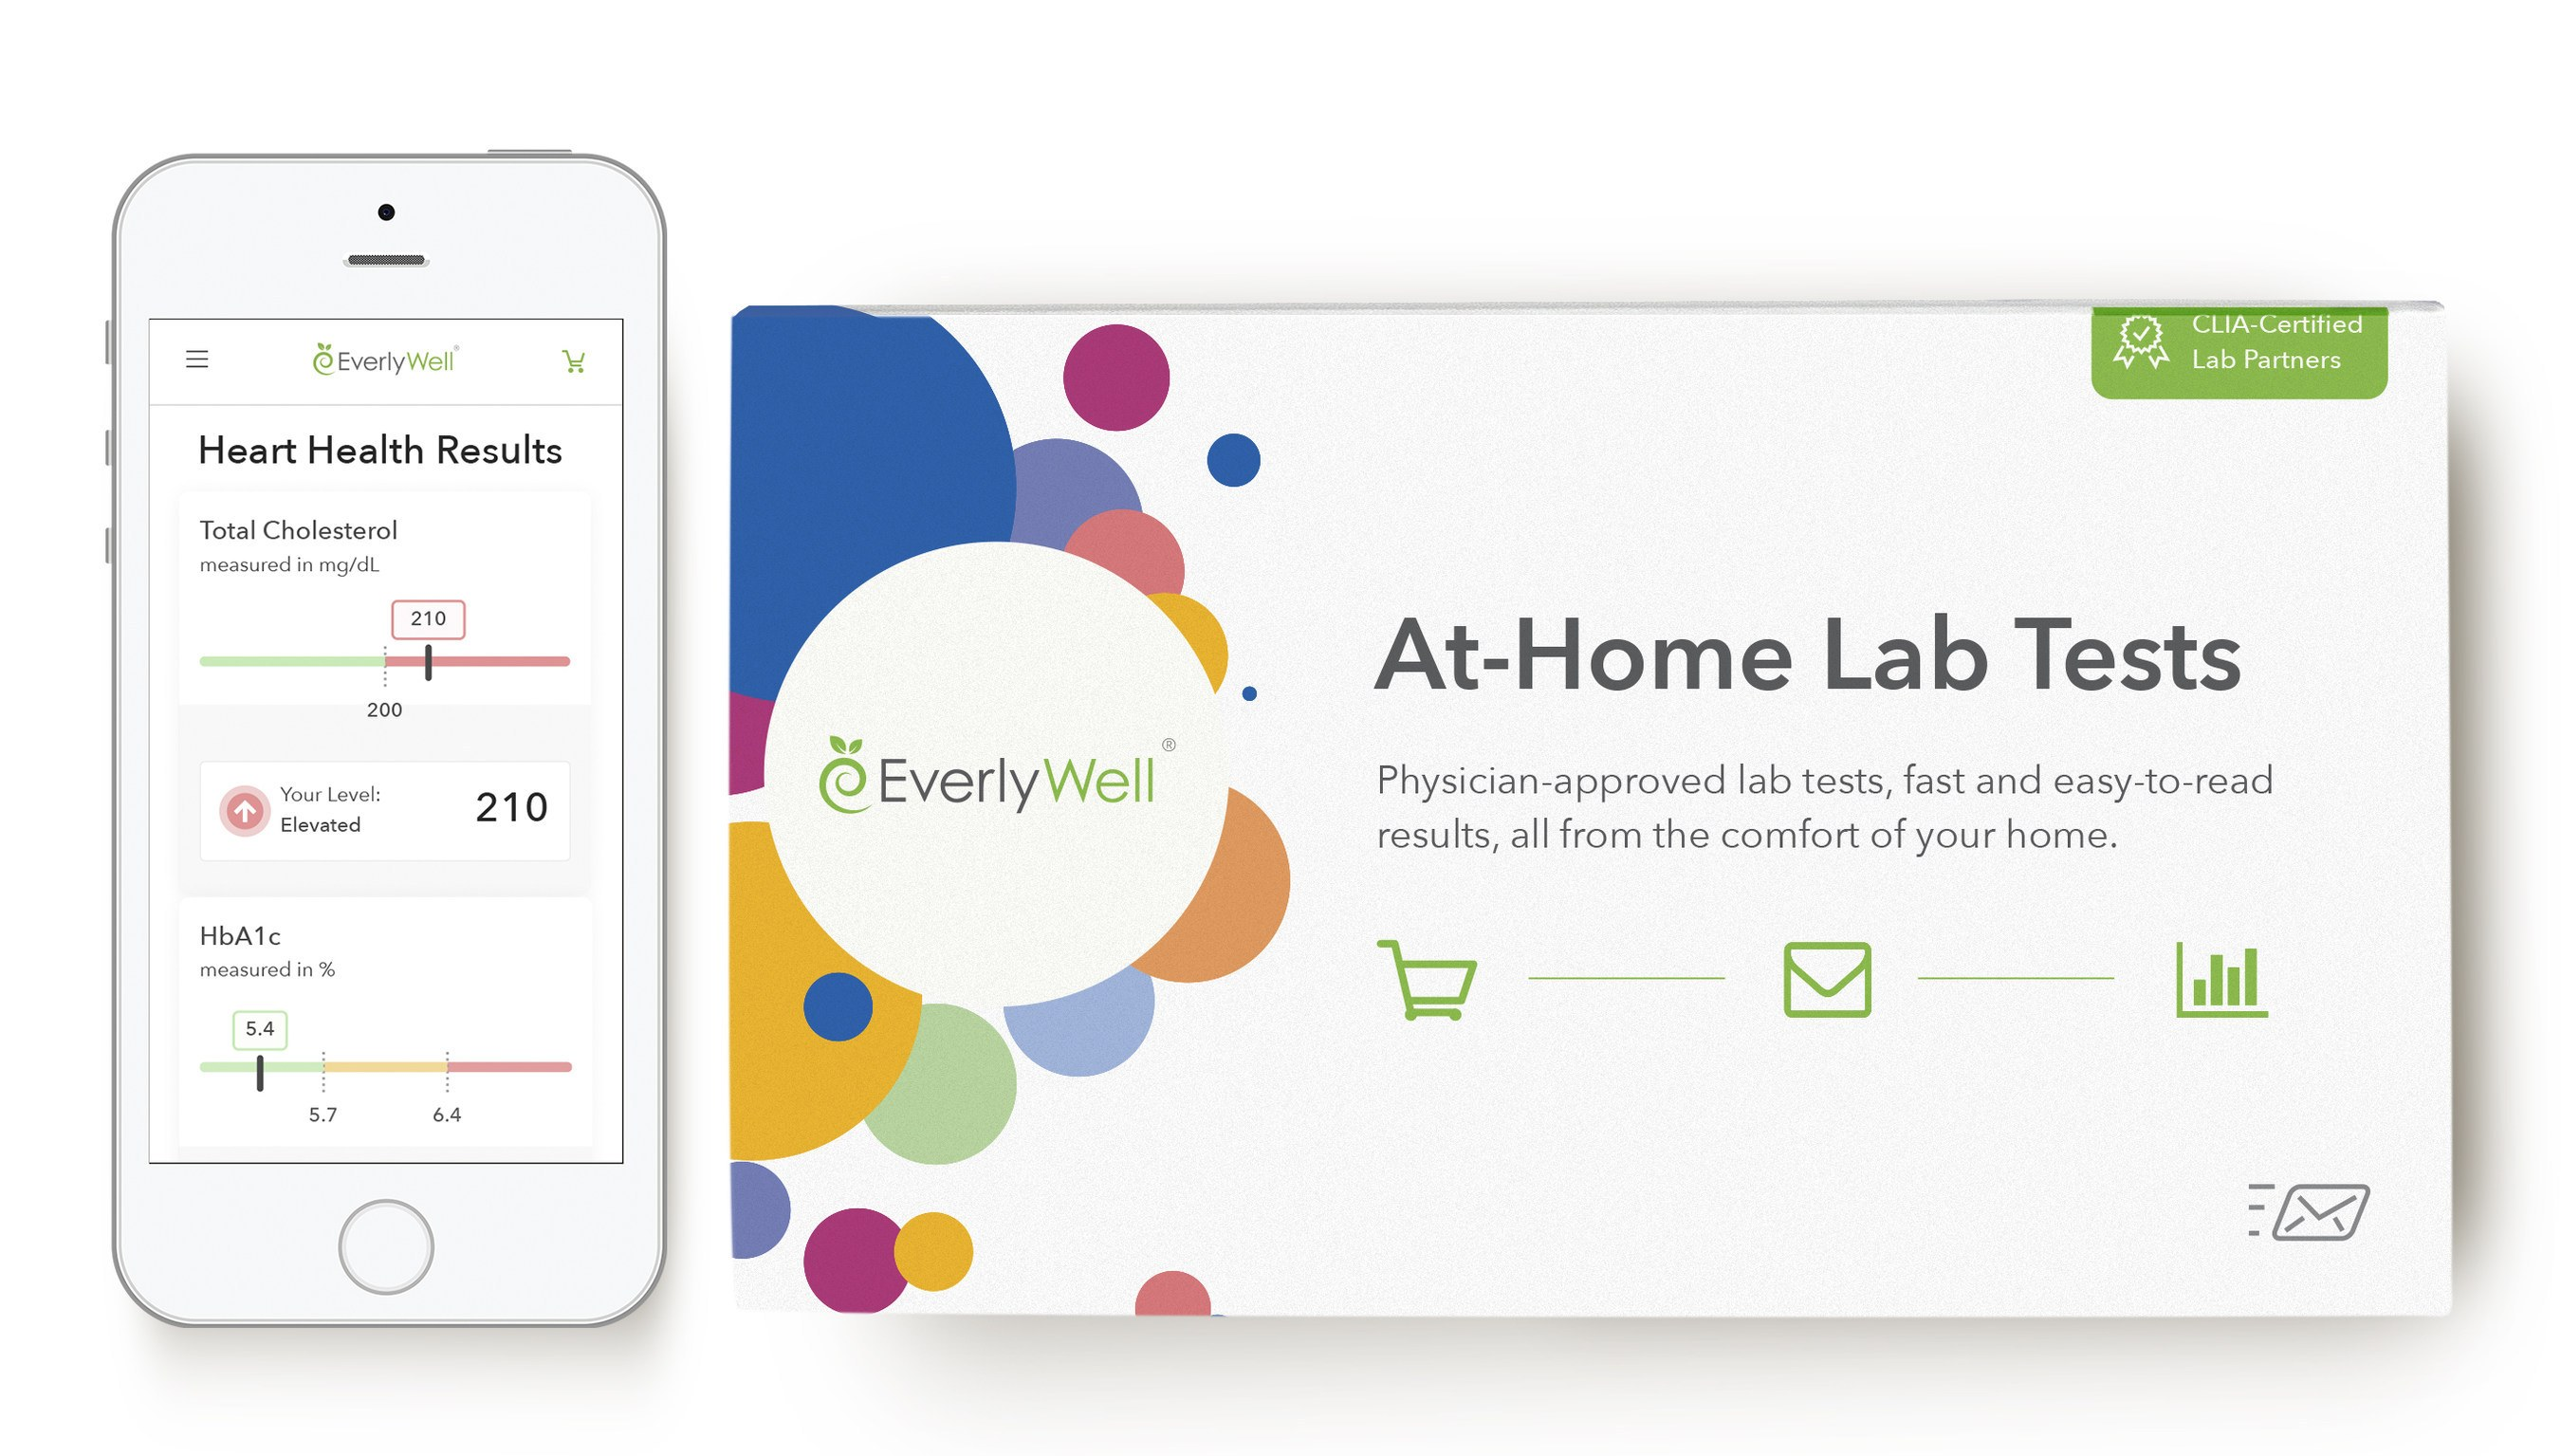 EverlyWell Raises $50M to Scale In-Home Digital Lab Testing